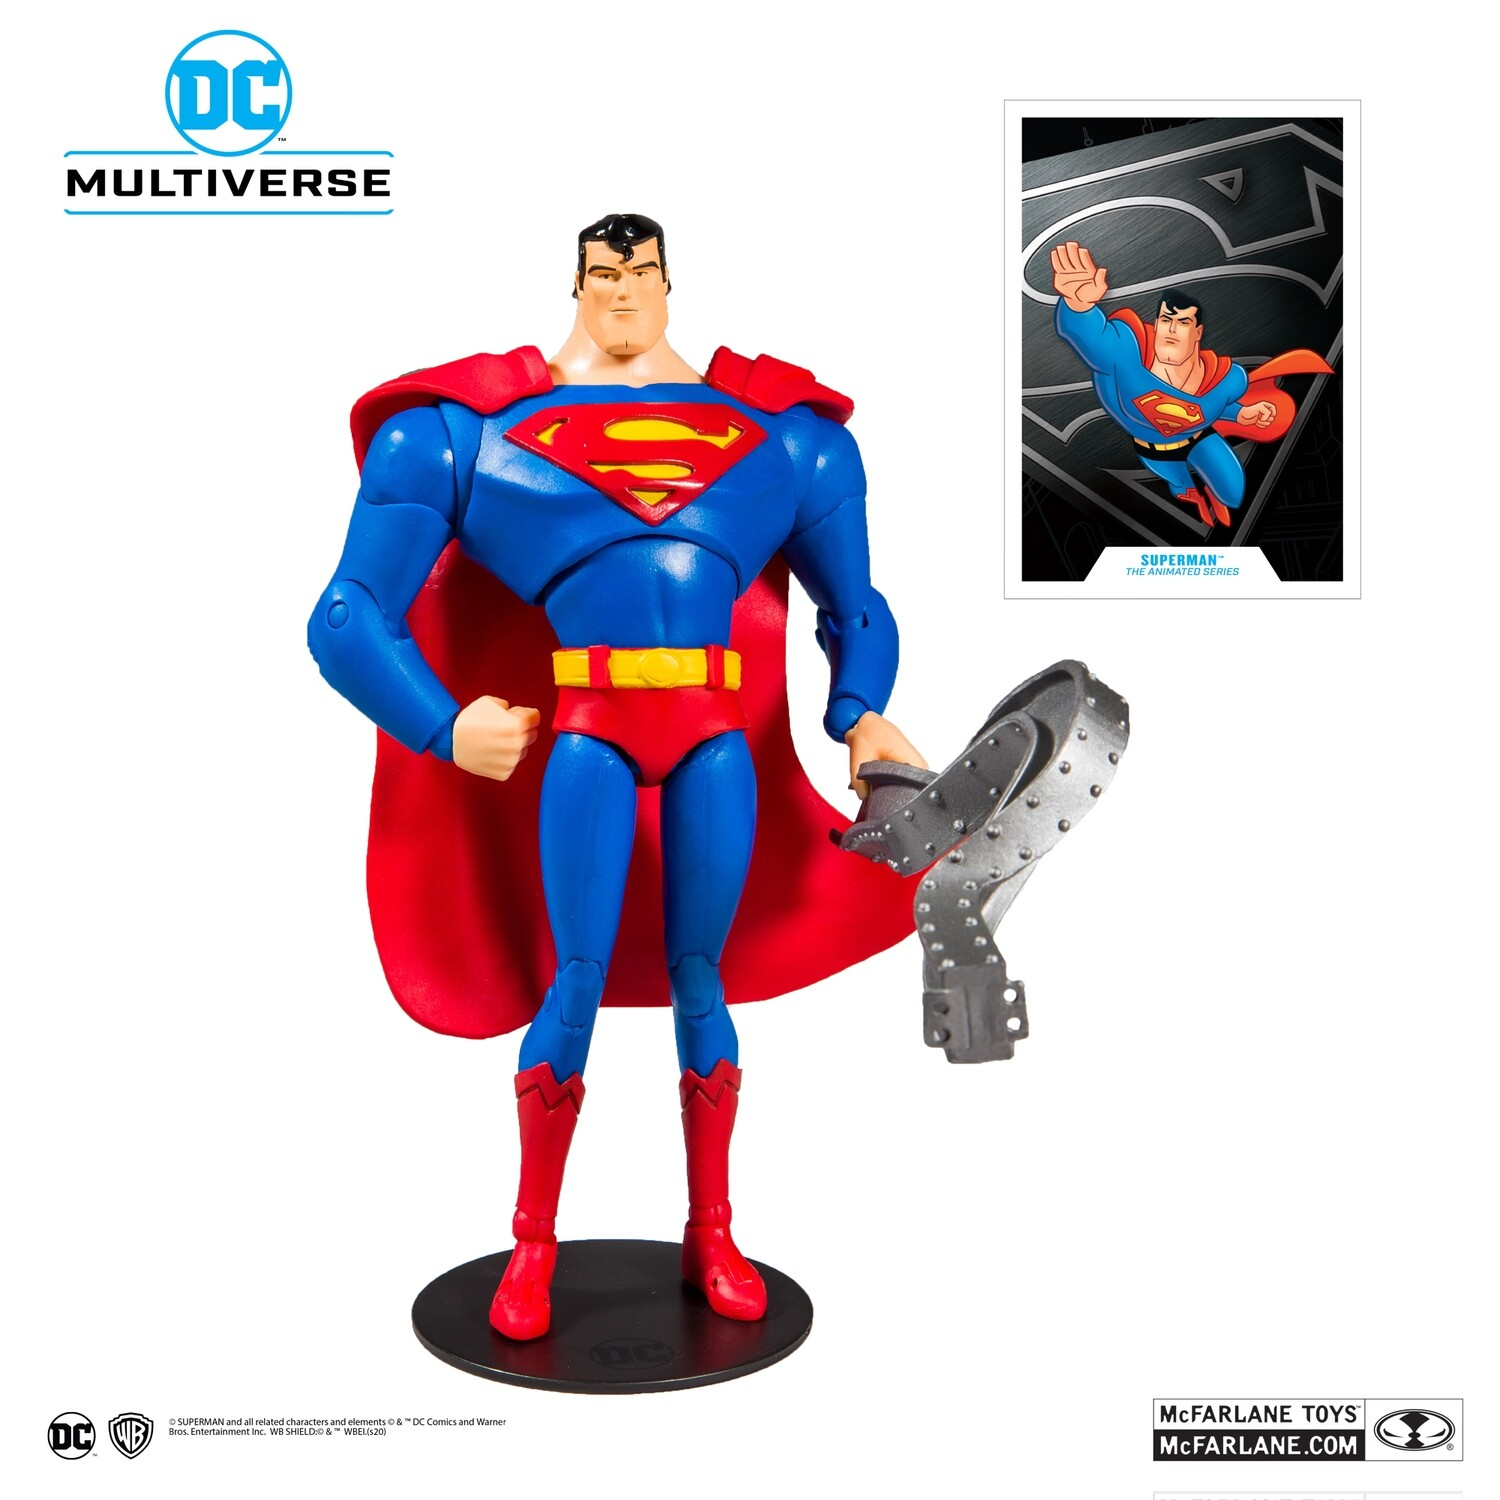 Mcfarlane DC Animated Wave 1 Superman: The Animated Series 7-Inch Action Figure